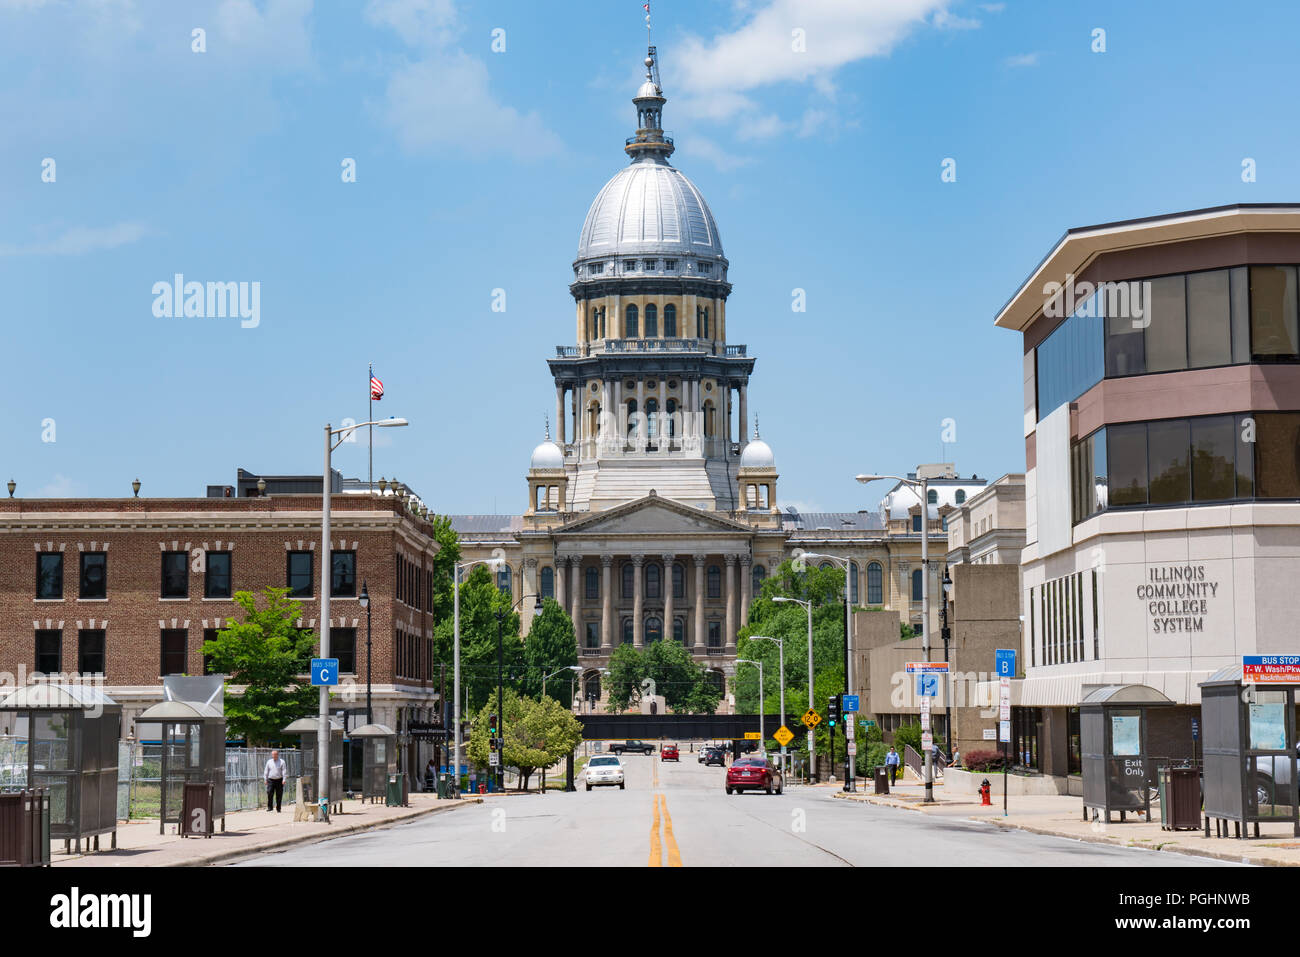 SPRINGFIELD, IL - JUNE 19, 2018: Illinois State Capitol from East Capitol Avenue - Stock Image